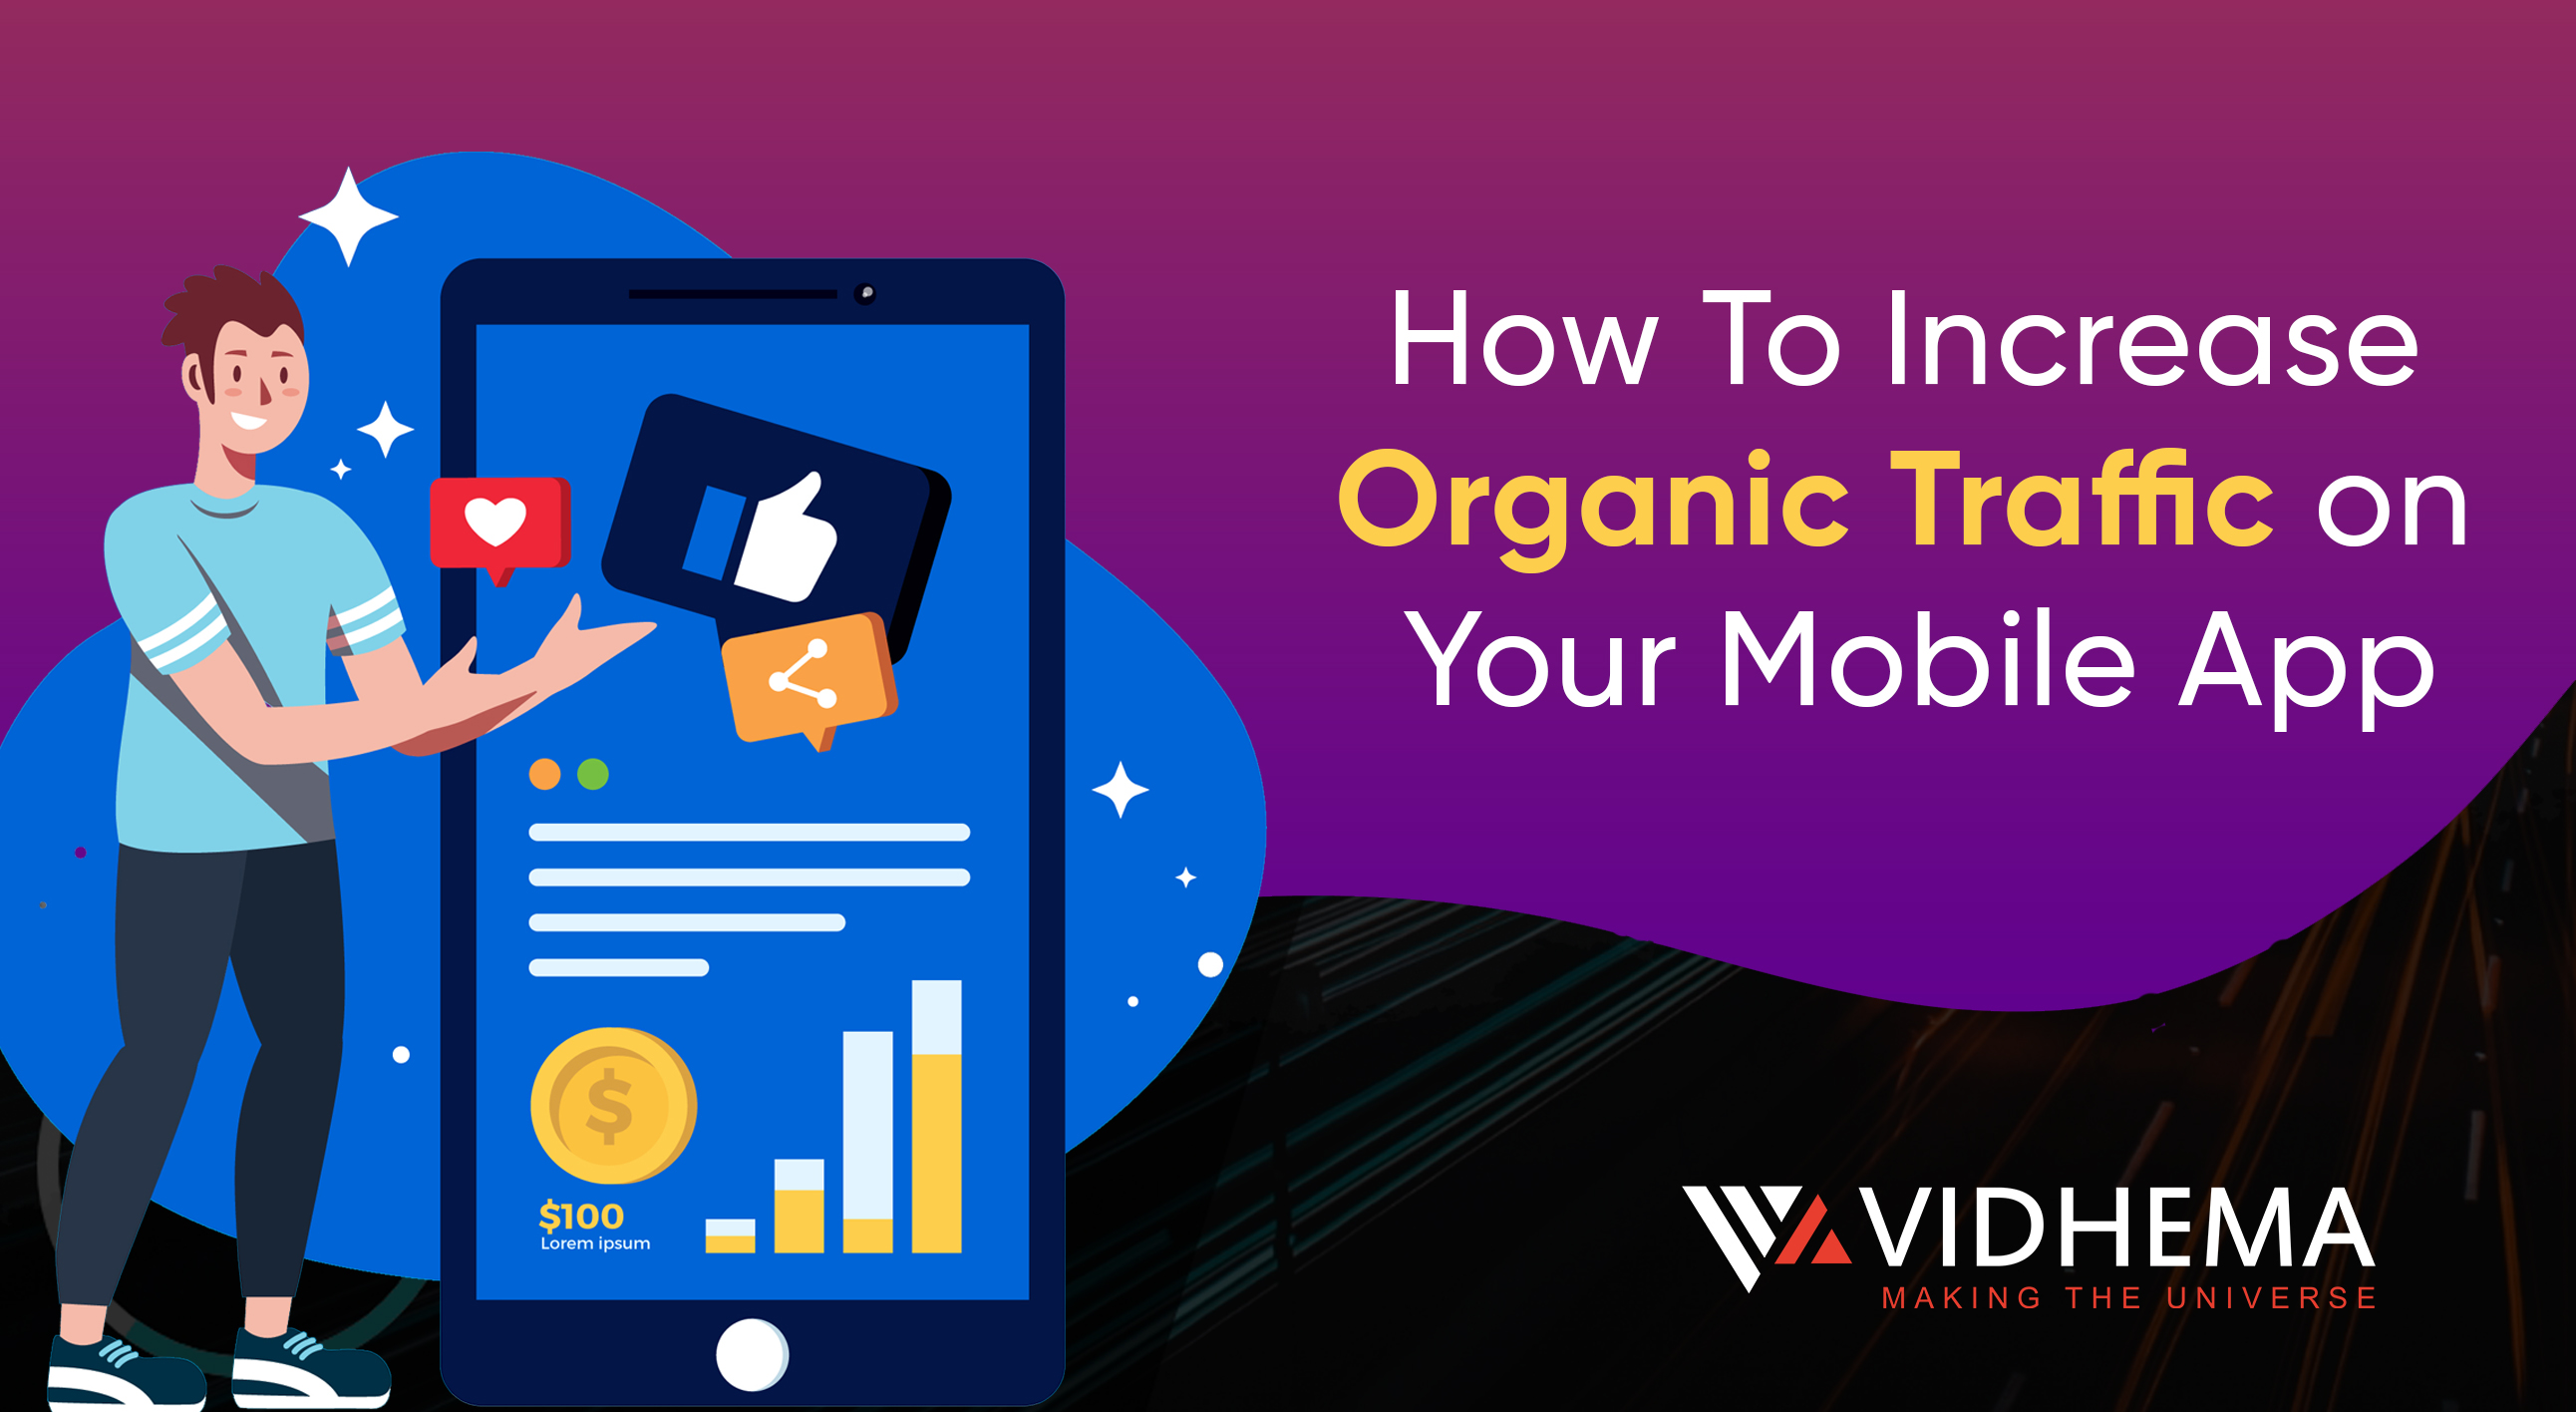 How To Increase Organic Traffic on Your Mobile App